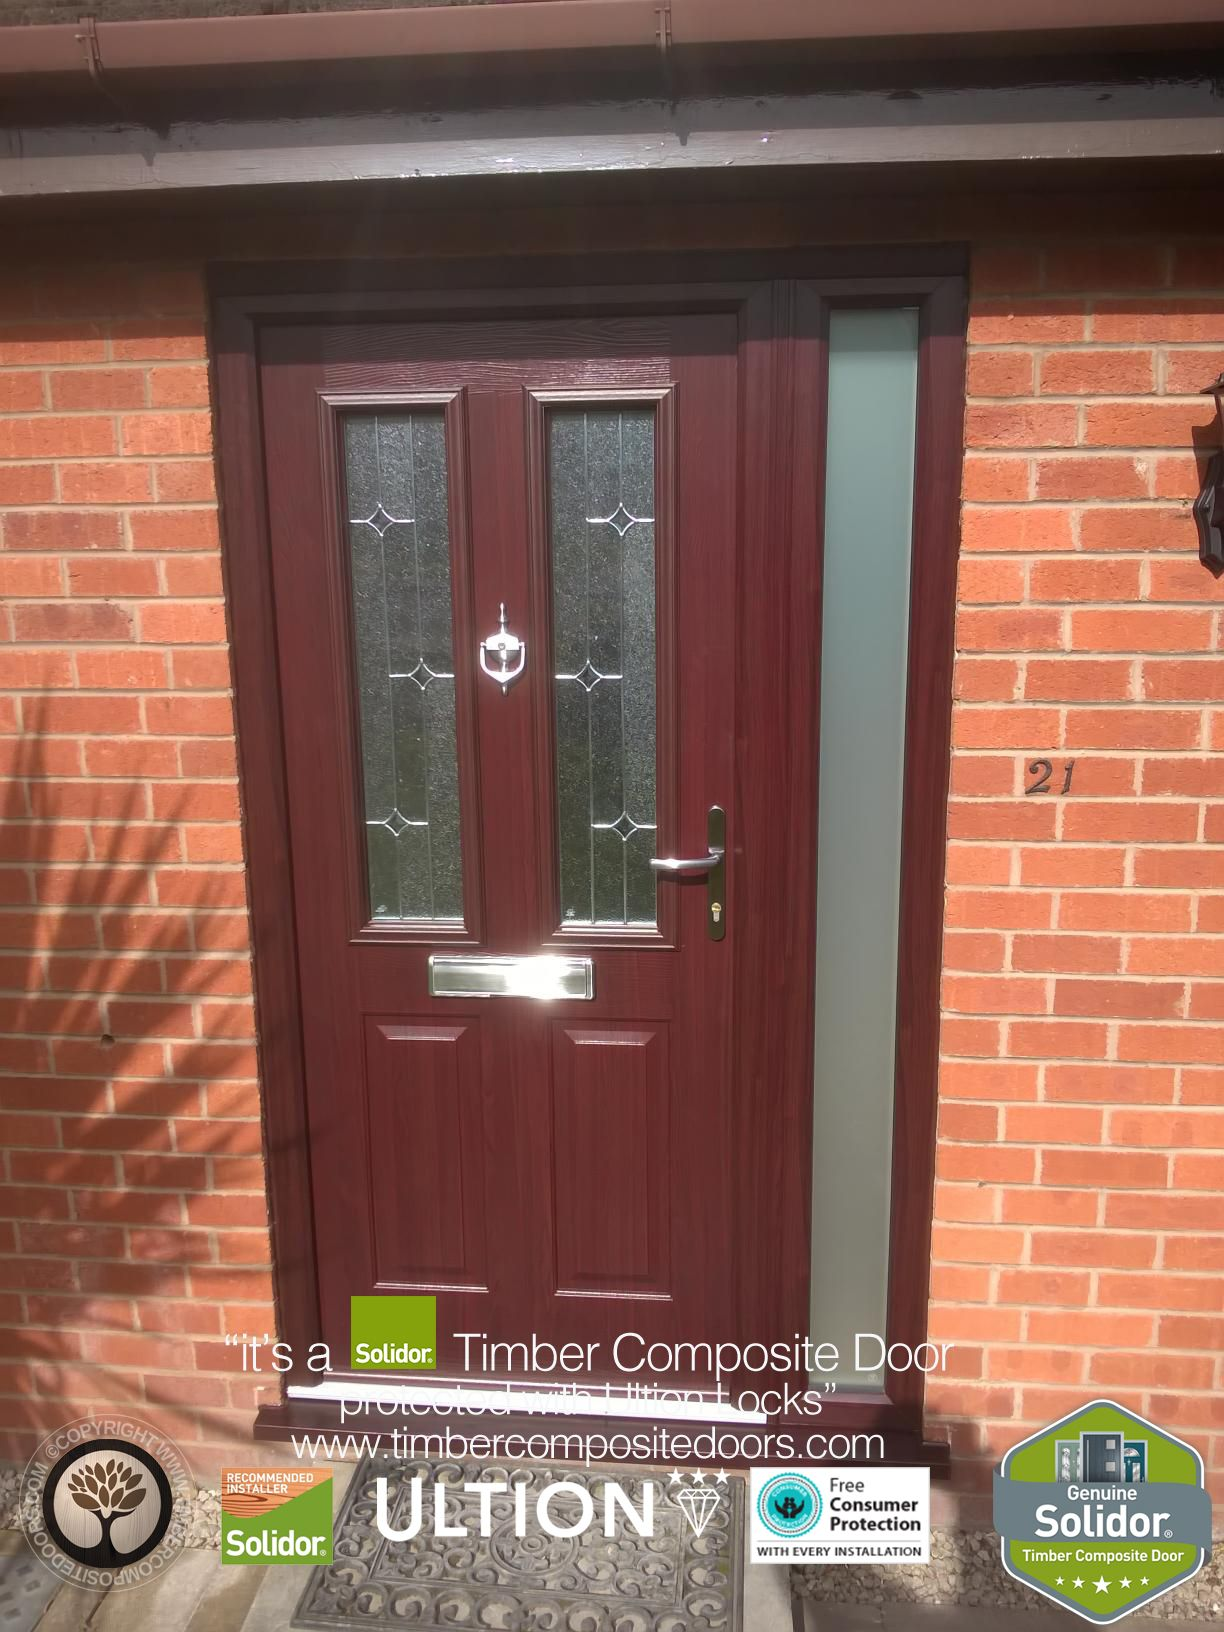 Hey, what do you think of this new Solidor Composite Door, installed ...